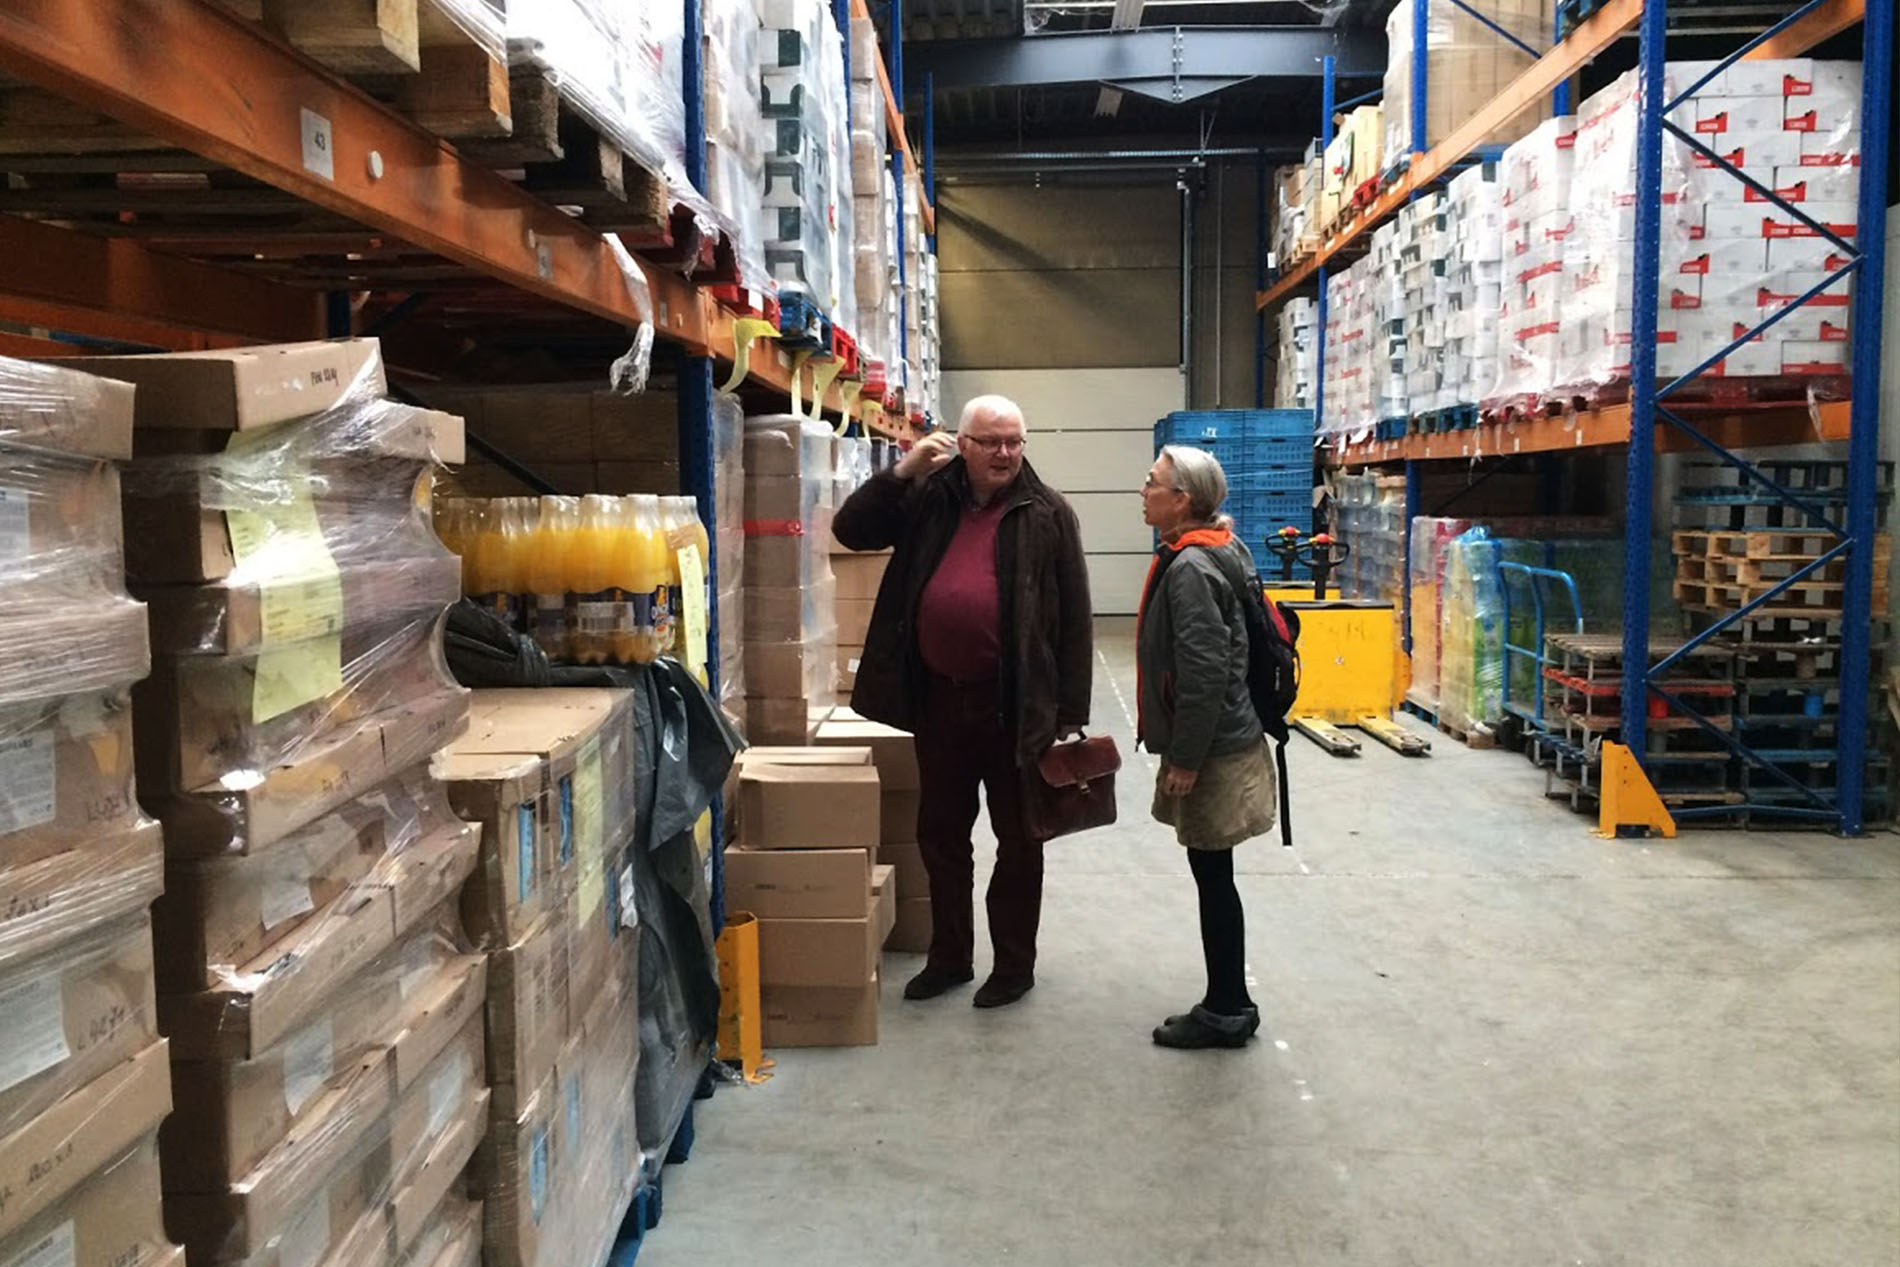 a woman talks with a male food bank official as they stand in a warehouse among shelves of canned food